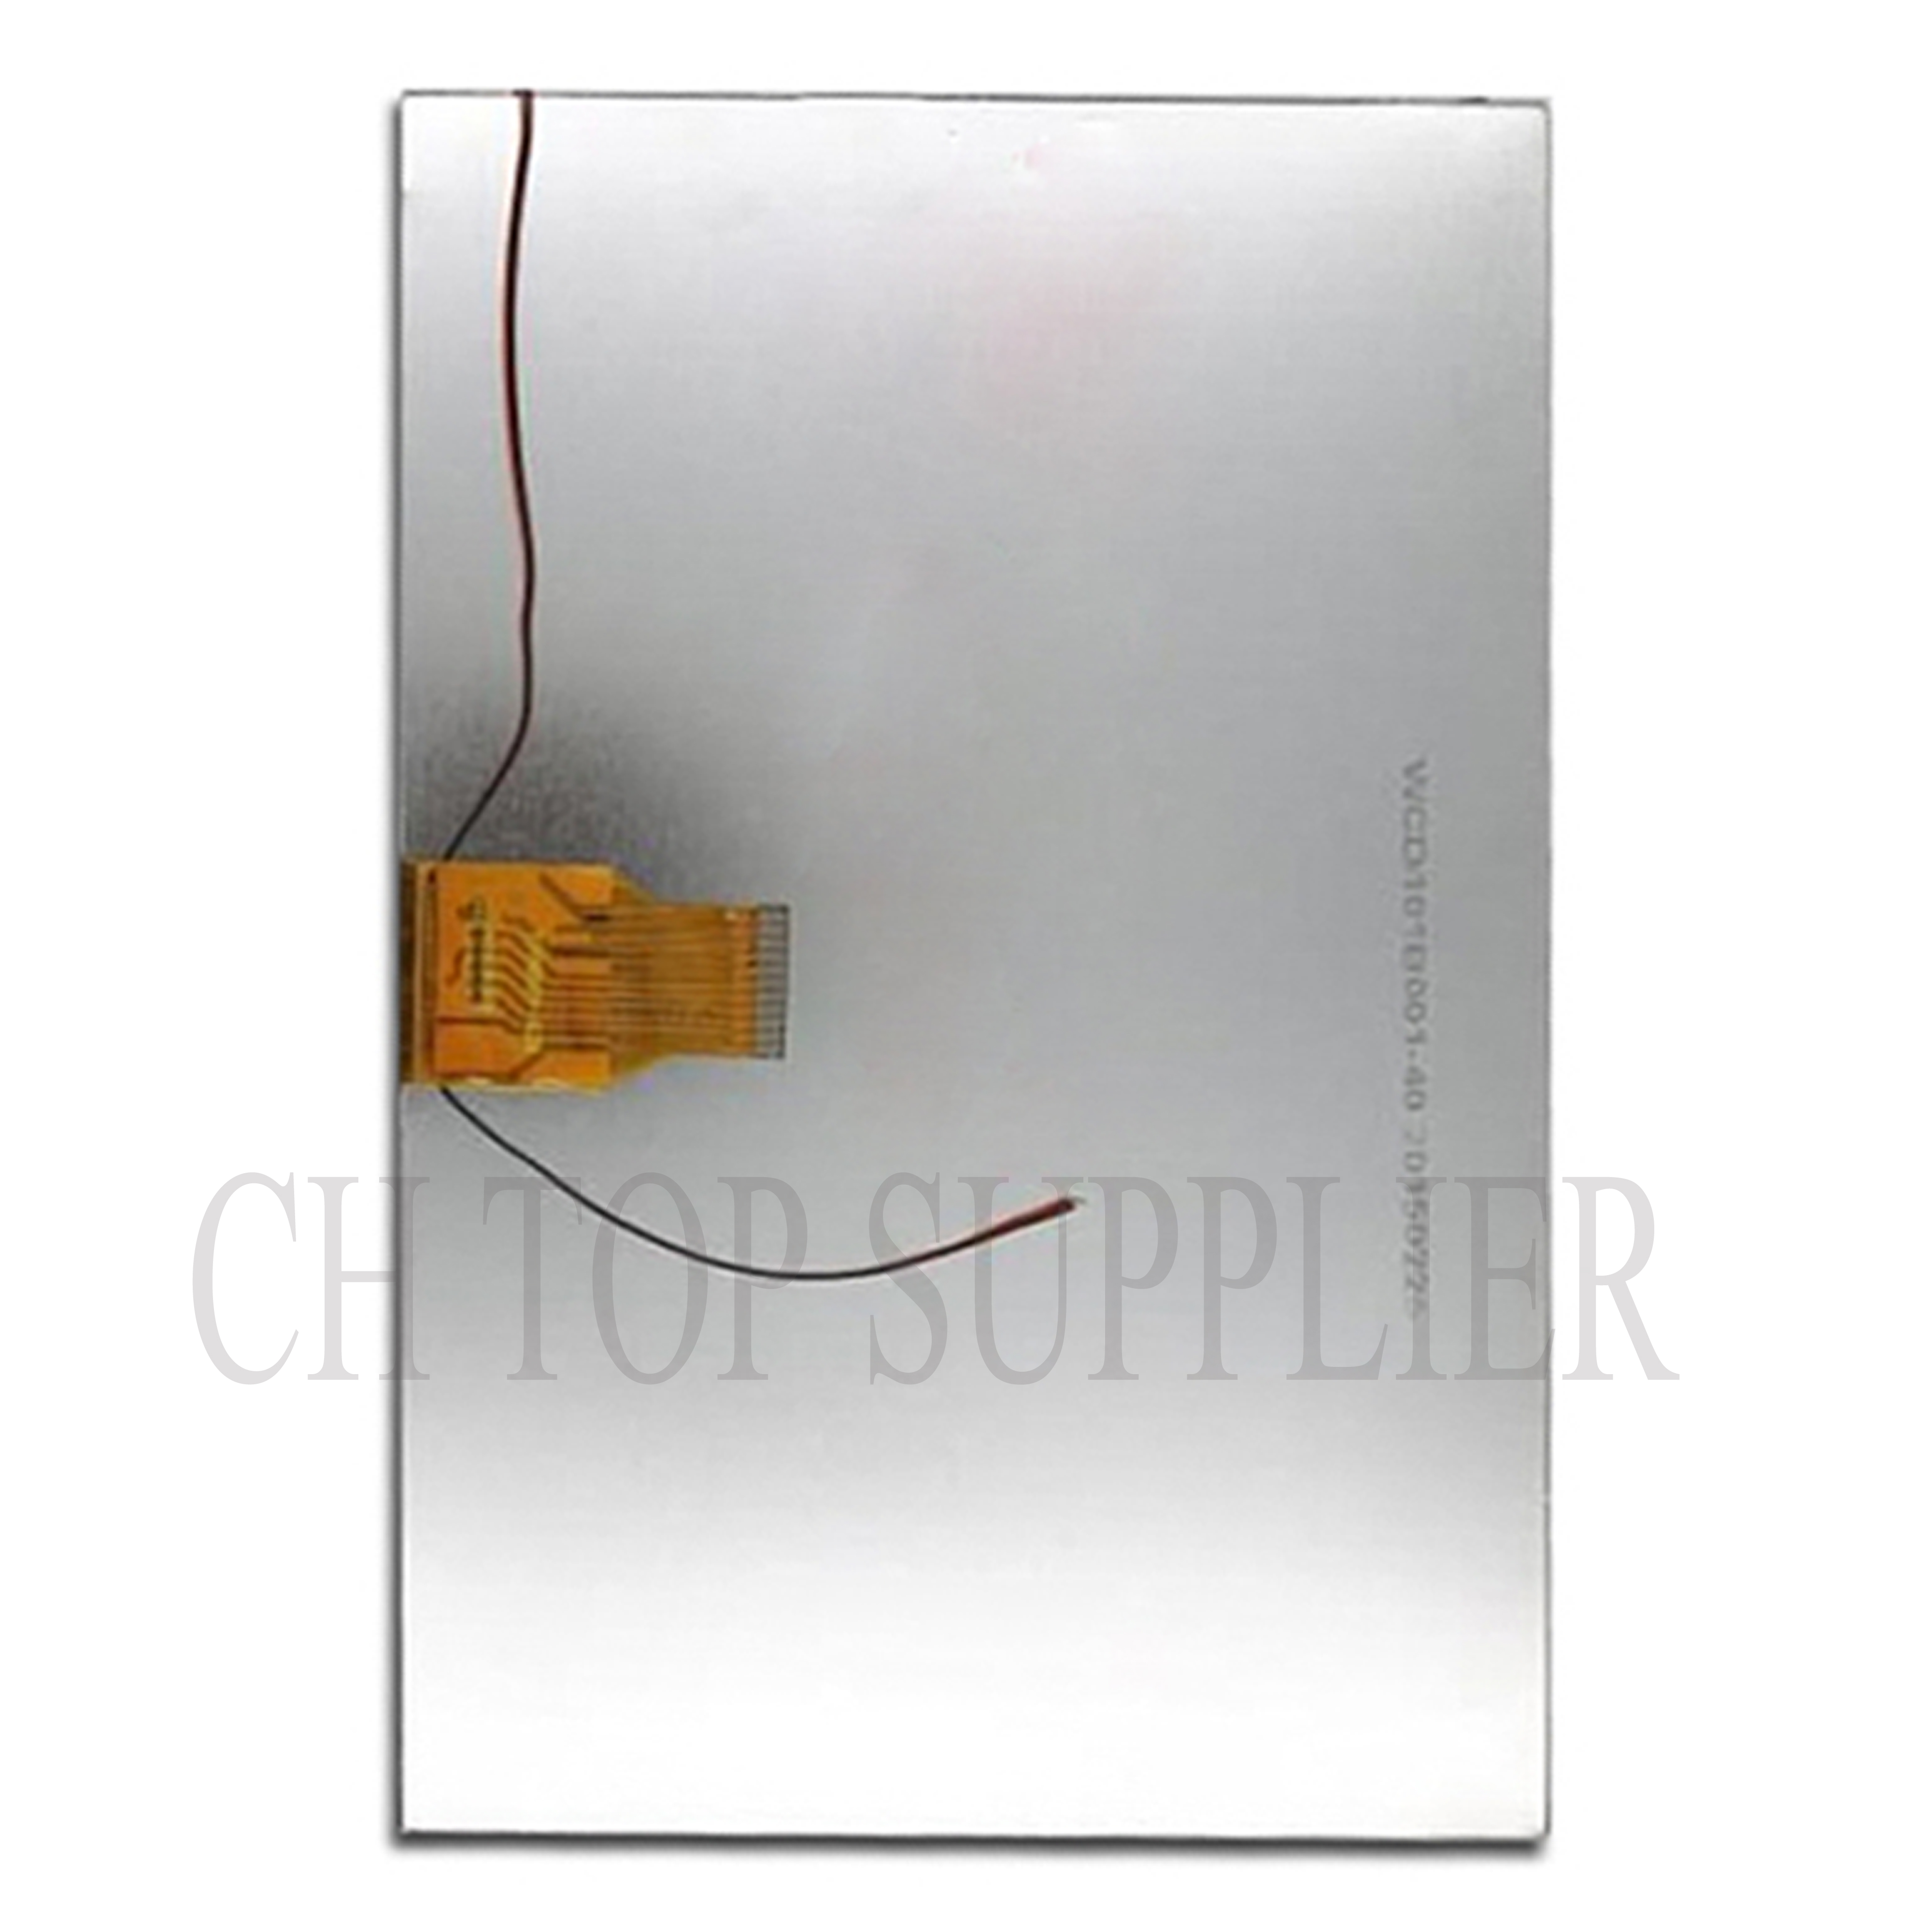 New LCD Display Matrix For 10.1 Turbopad 1014 Tablet Inner LCD Screen Panel Module Replacement Free Shipping